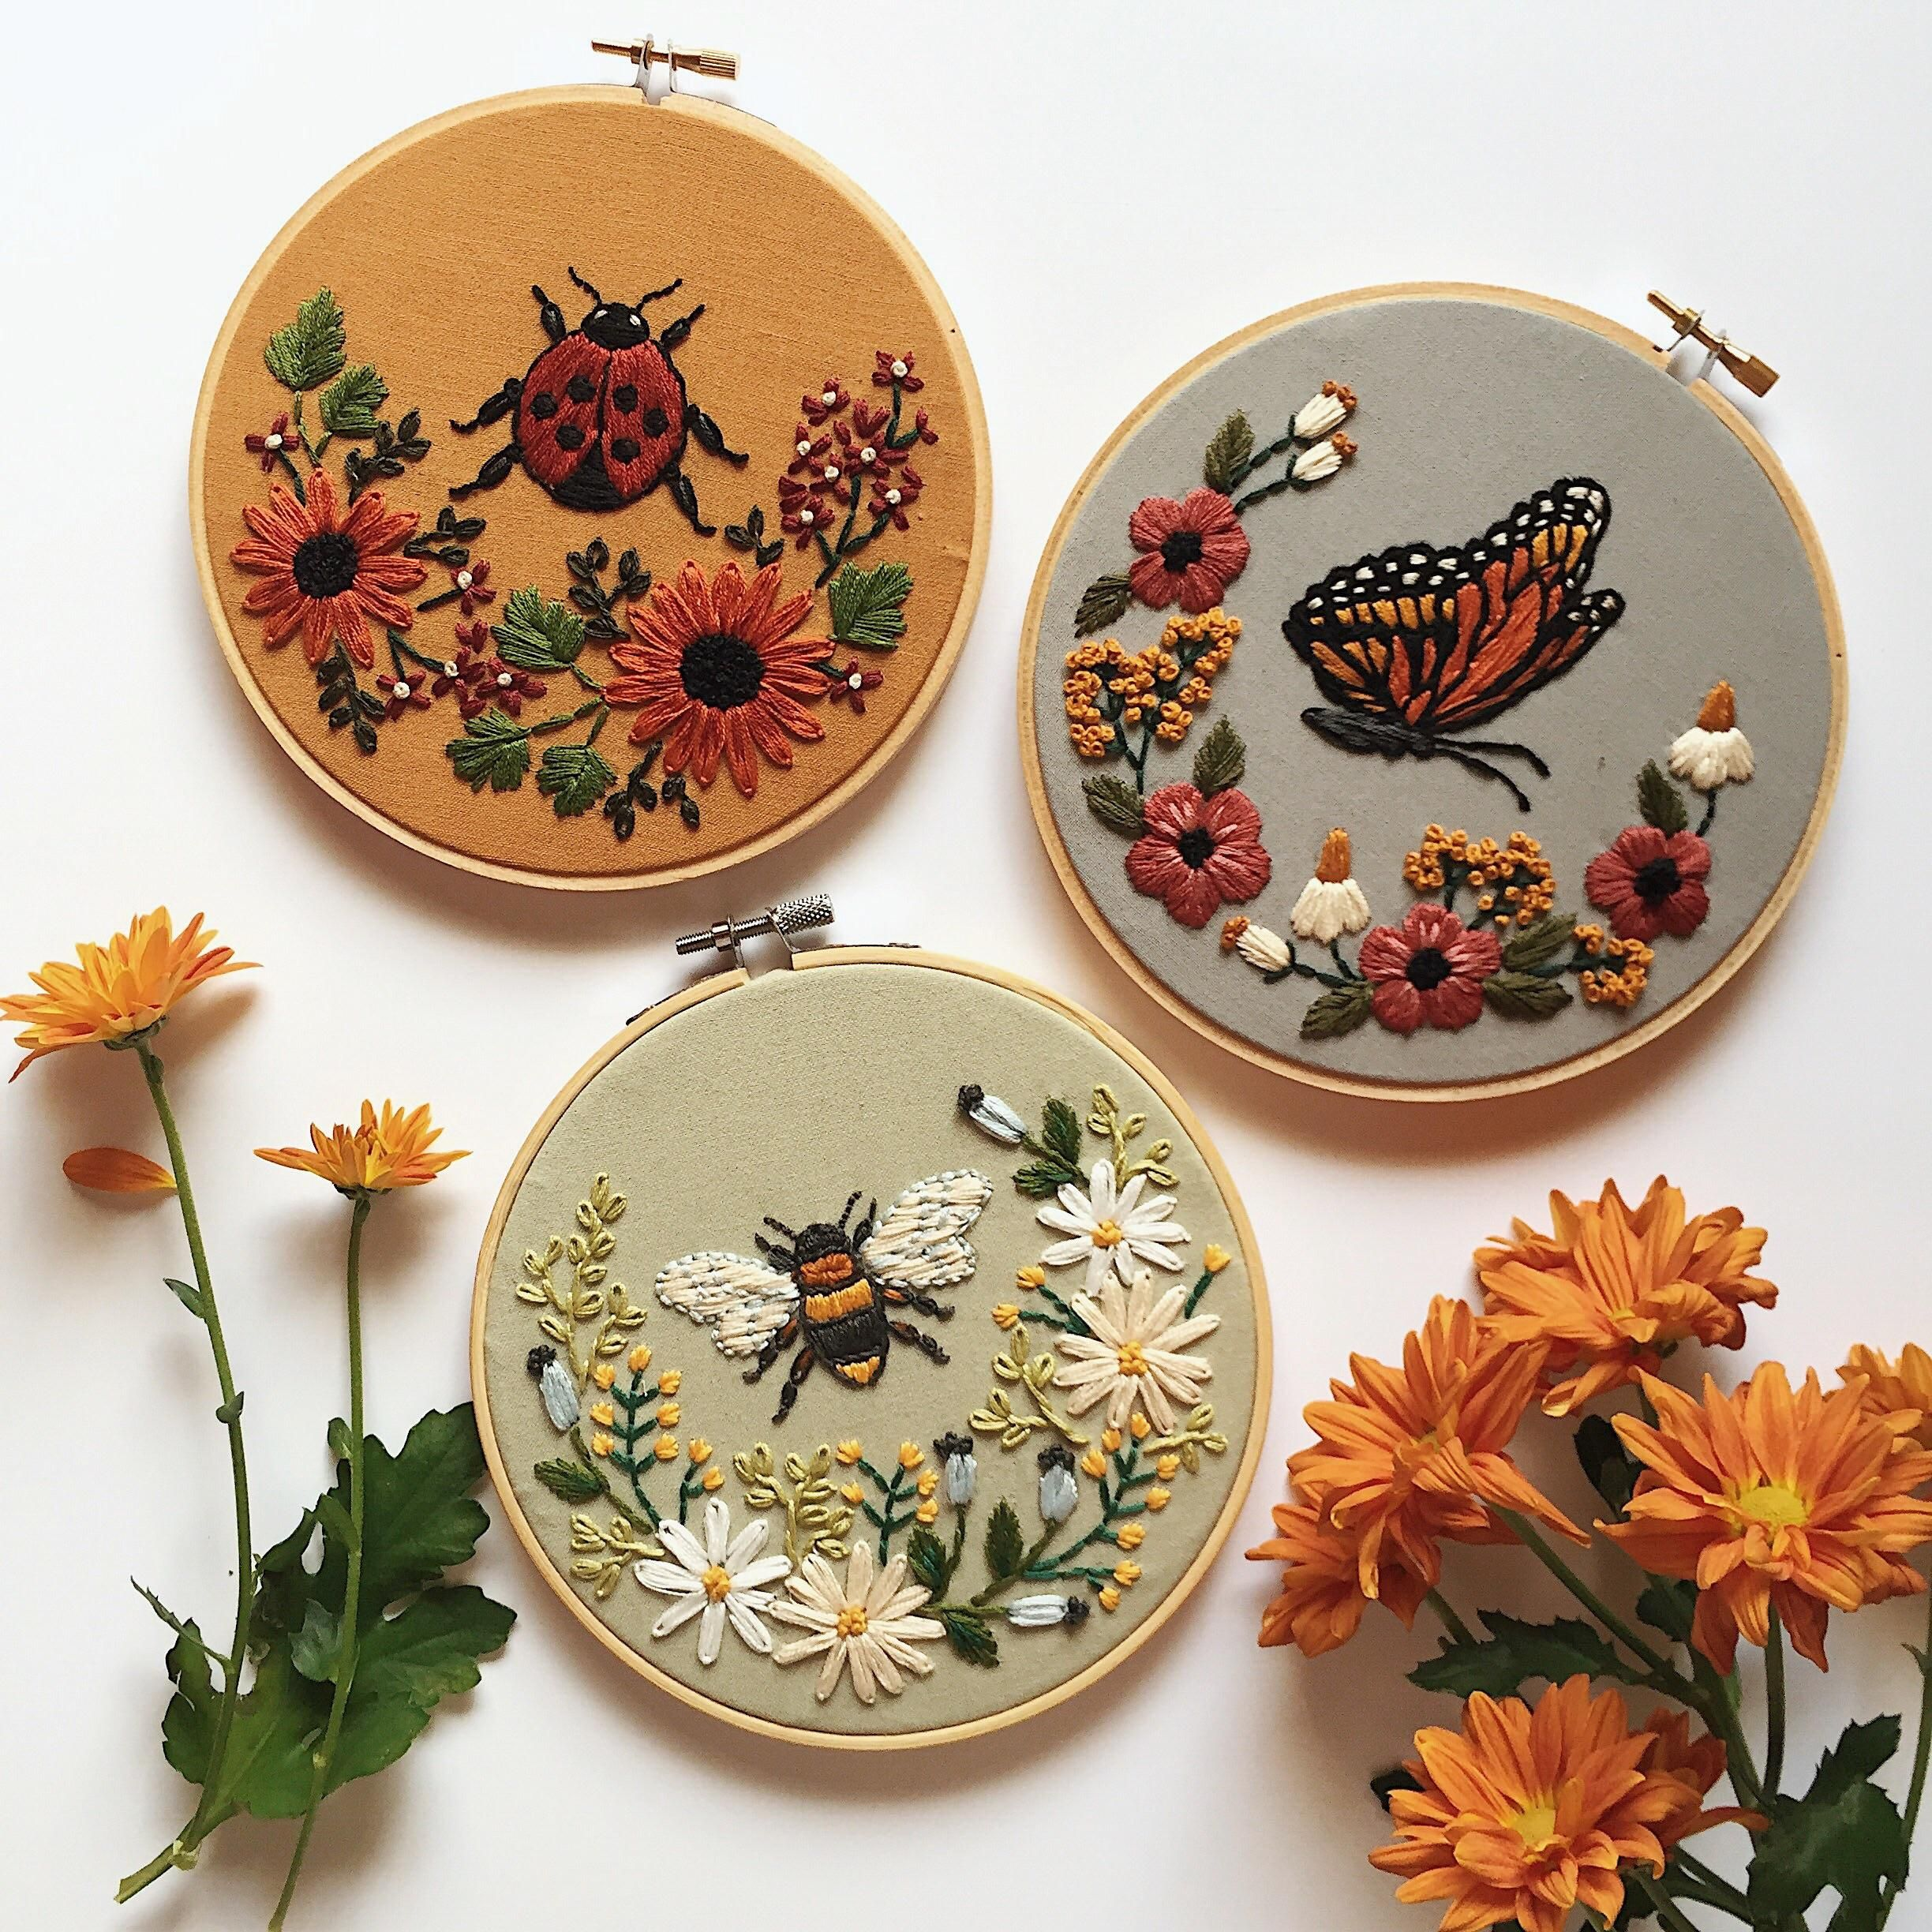 Love This Original Design Found On Reddit By U Compressedthesound Hand Embroidery Embroidery Craft Embroidery Hoop Art